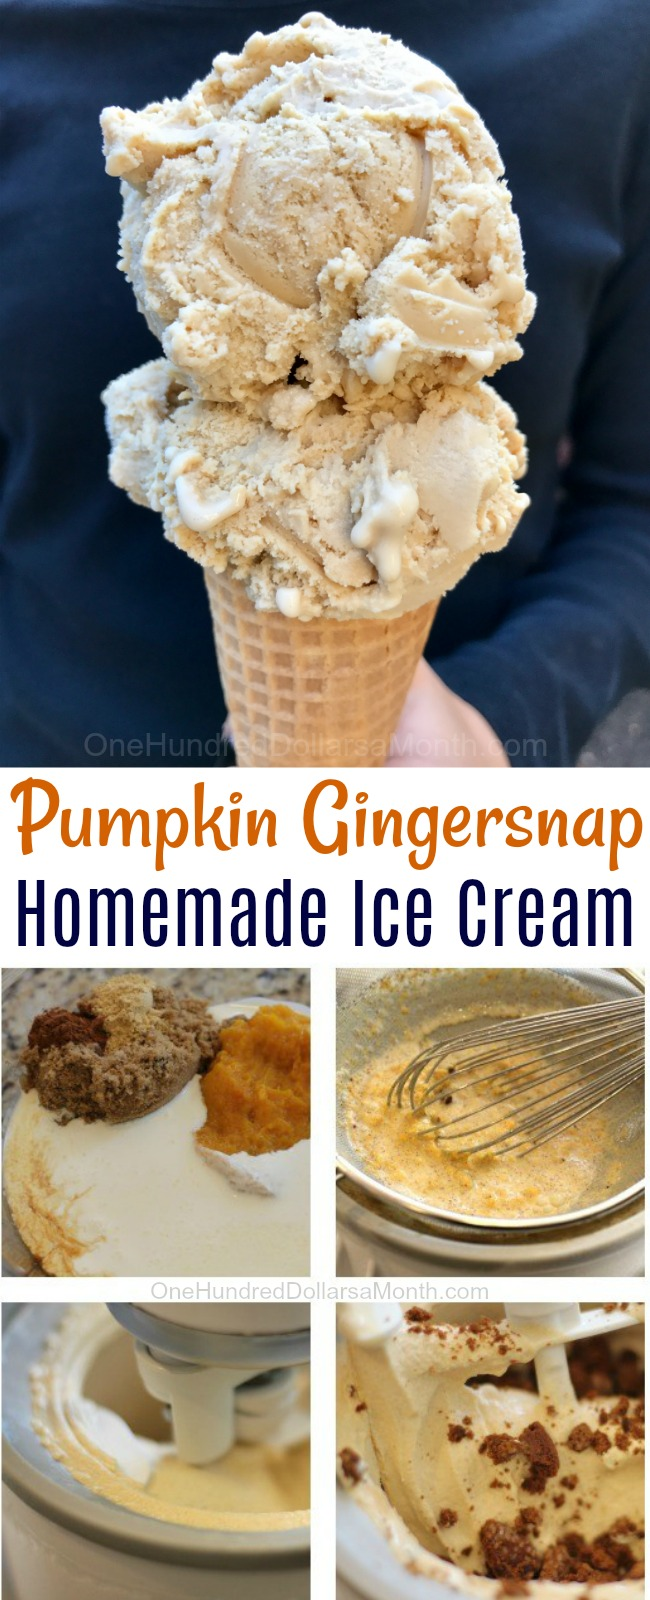 Thanksgiving Dessert Recipes – Pumpkin Gingersnap Ice Cream